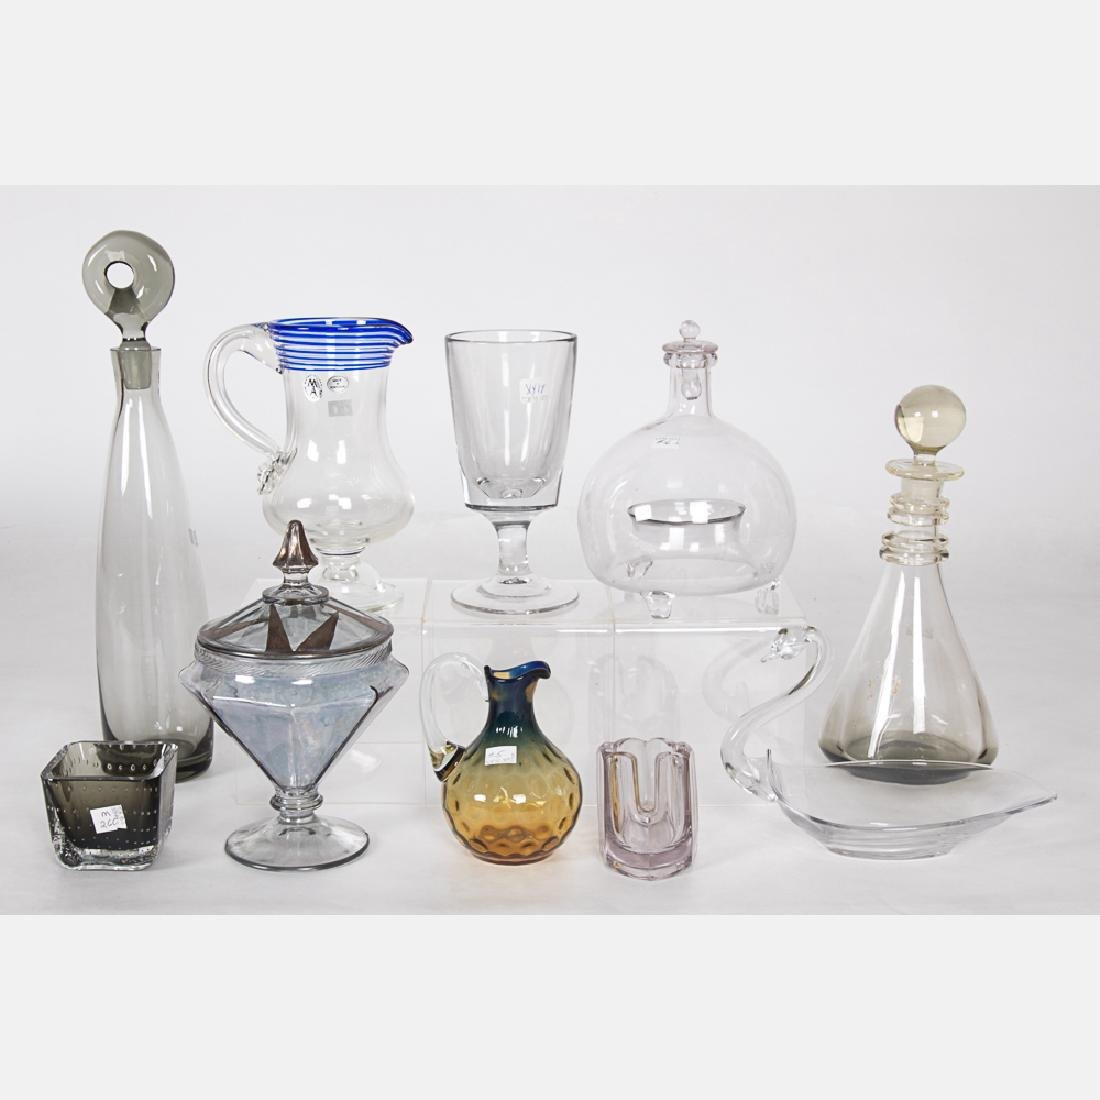 A Collection of Blown and Pressed Glass Serving and